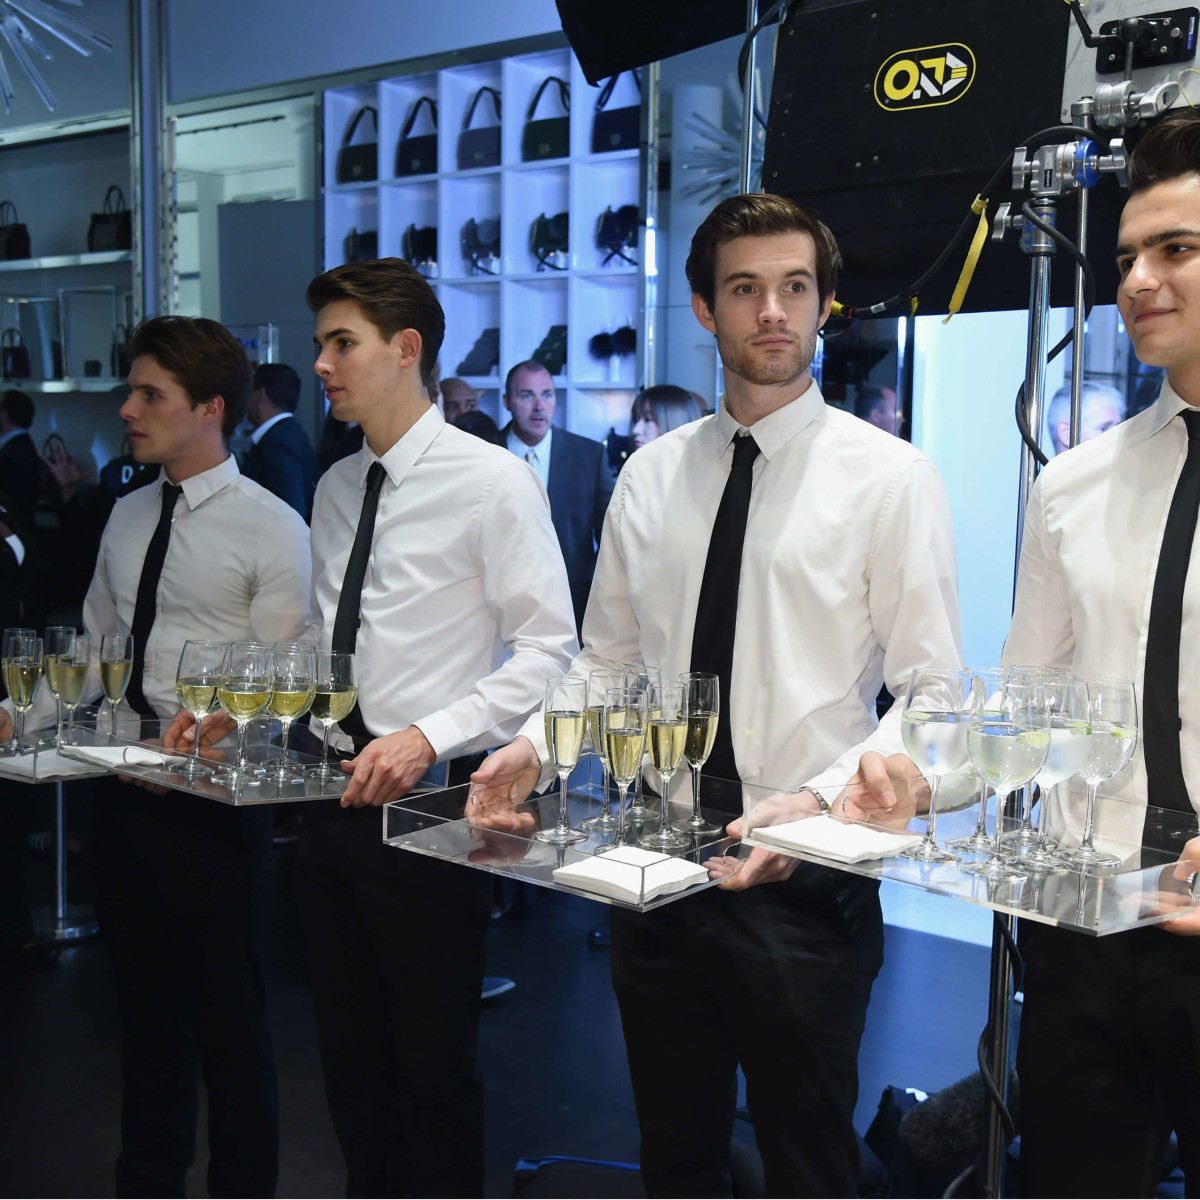 Waiters with champagne at Michael Kors watch launch